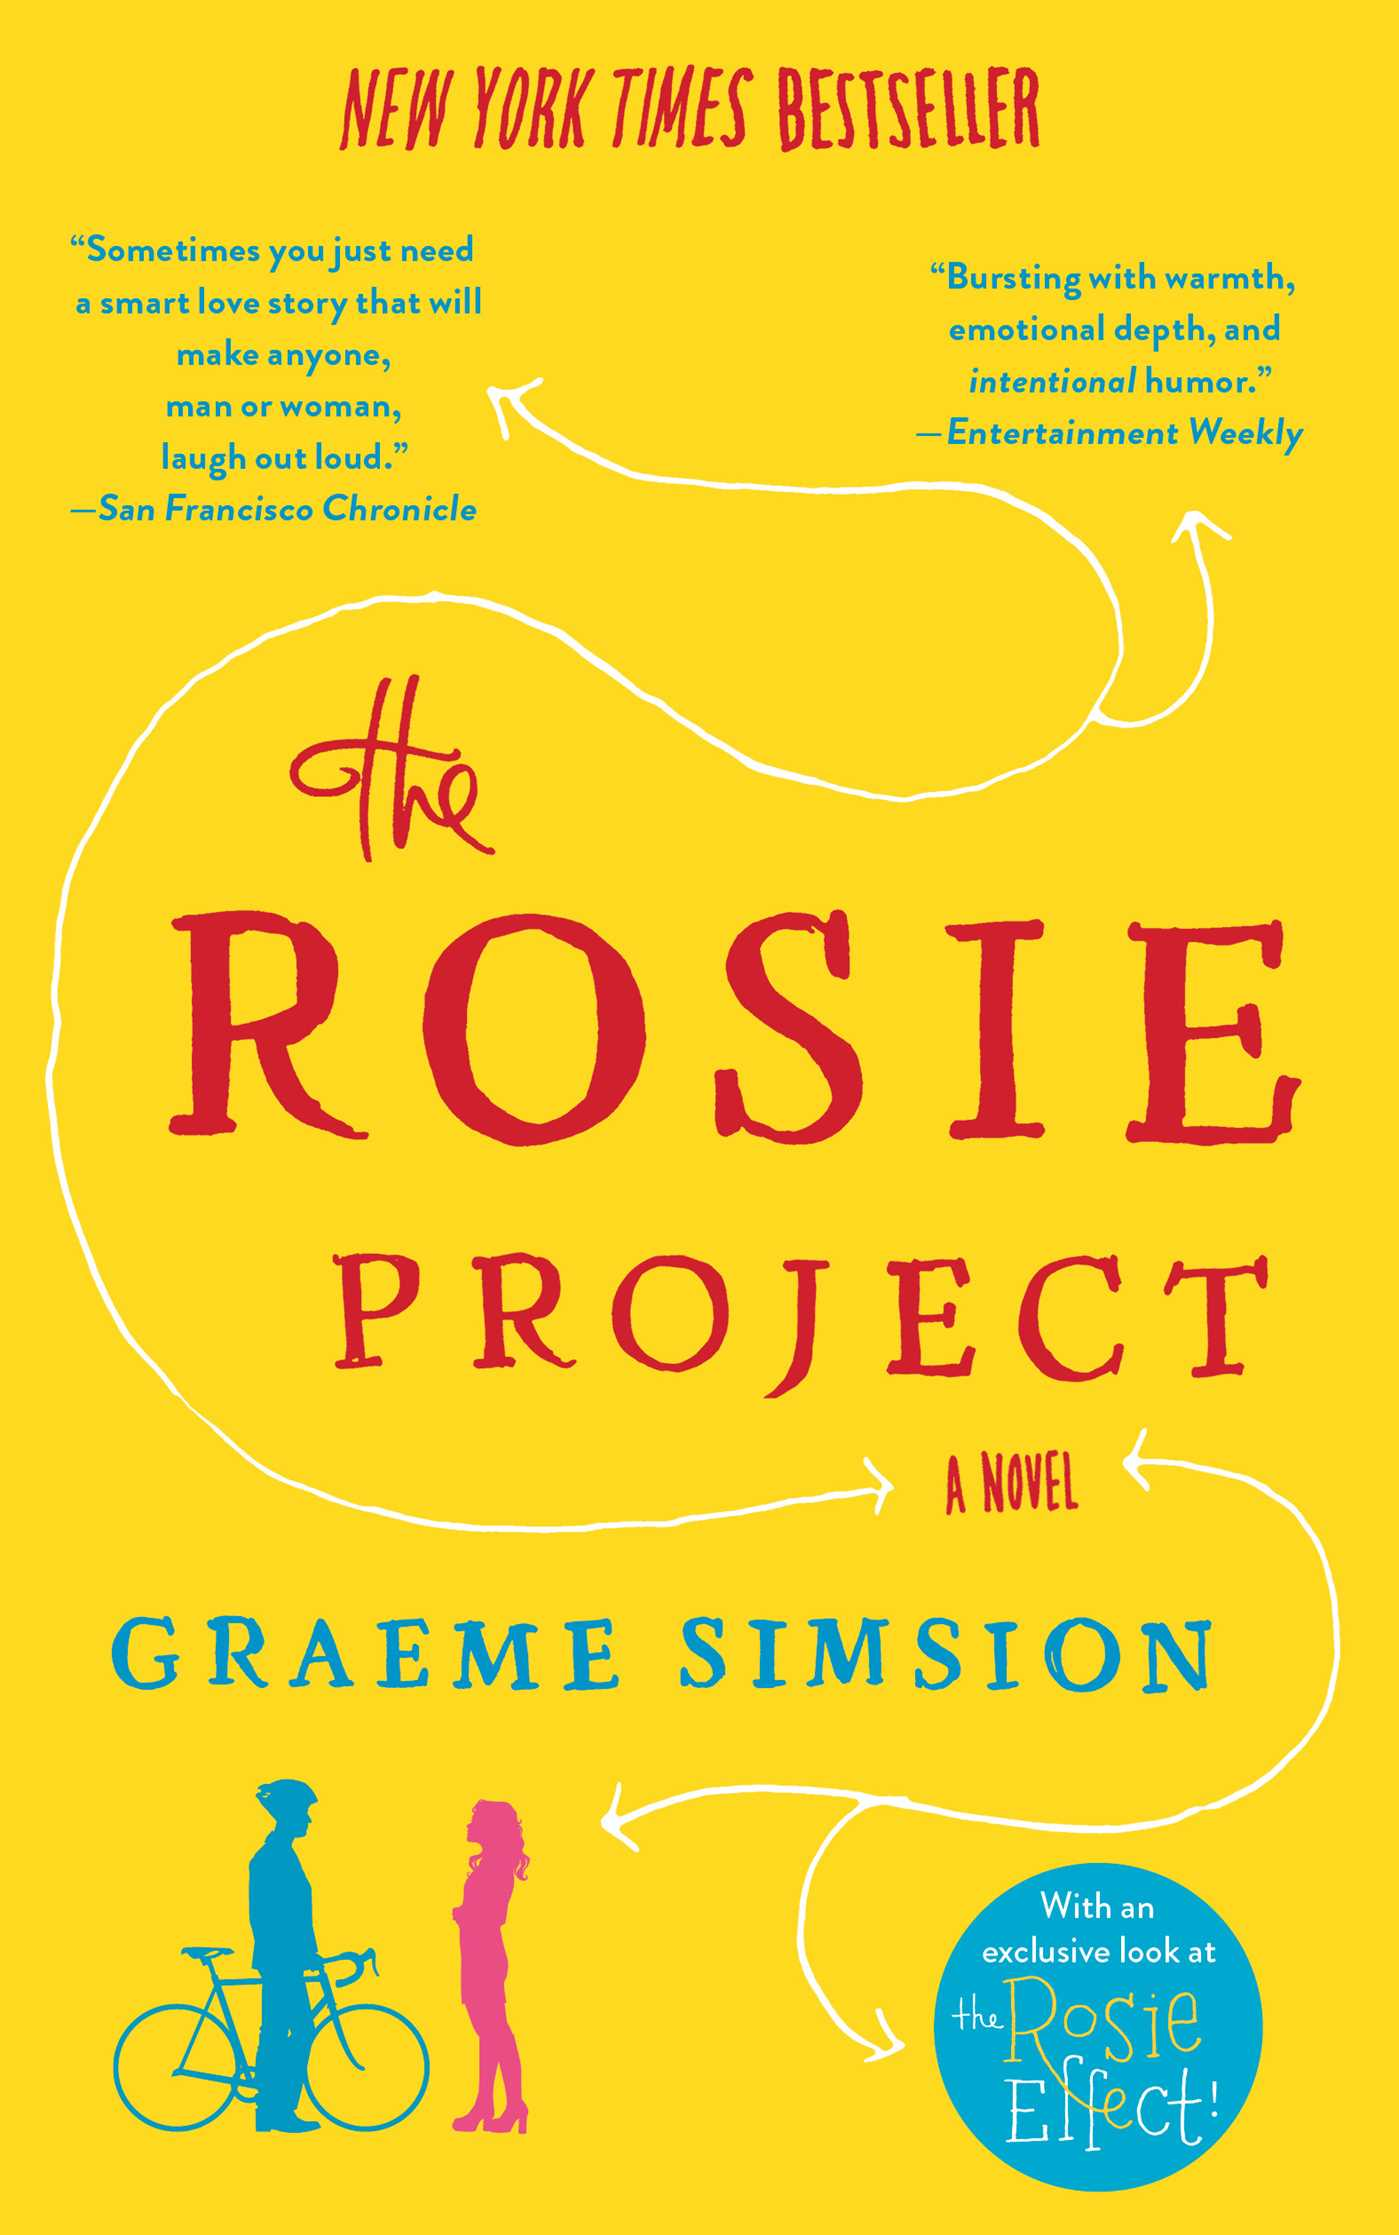 Rosie-project-9781476729091_hr